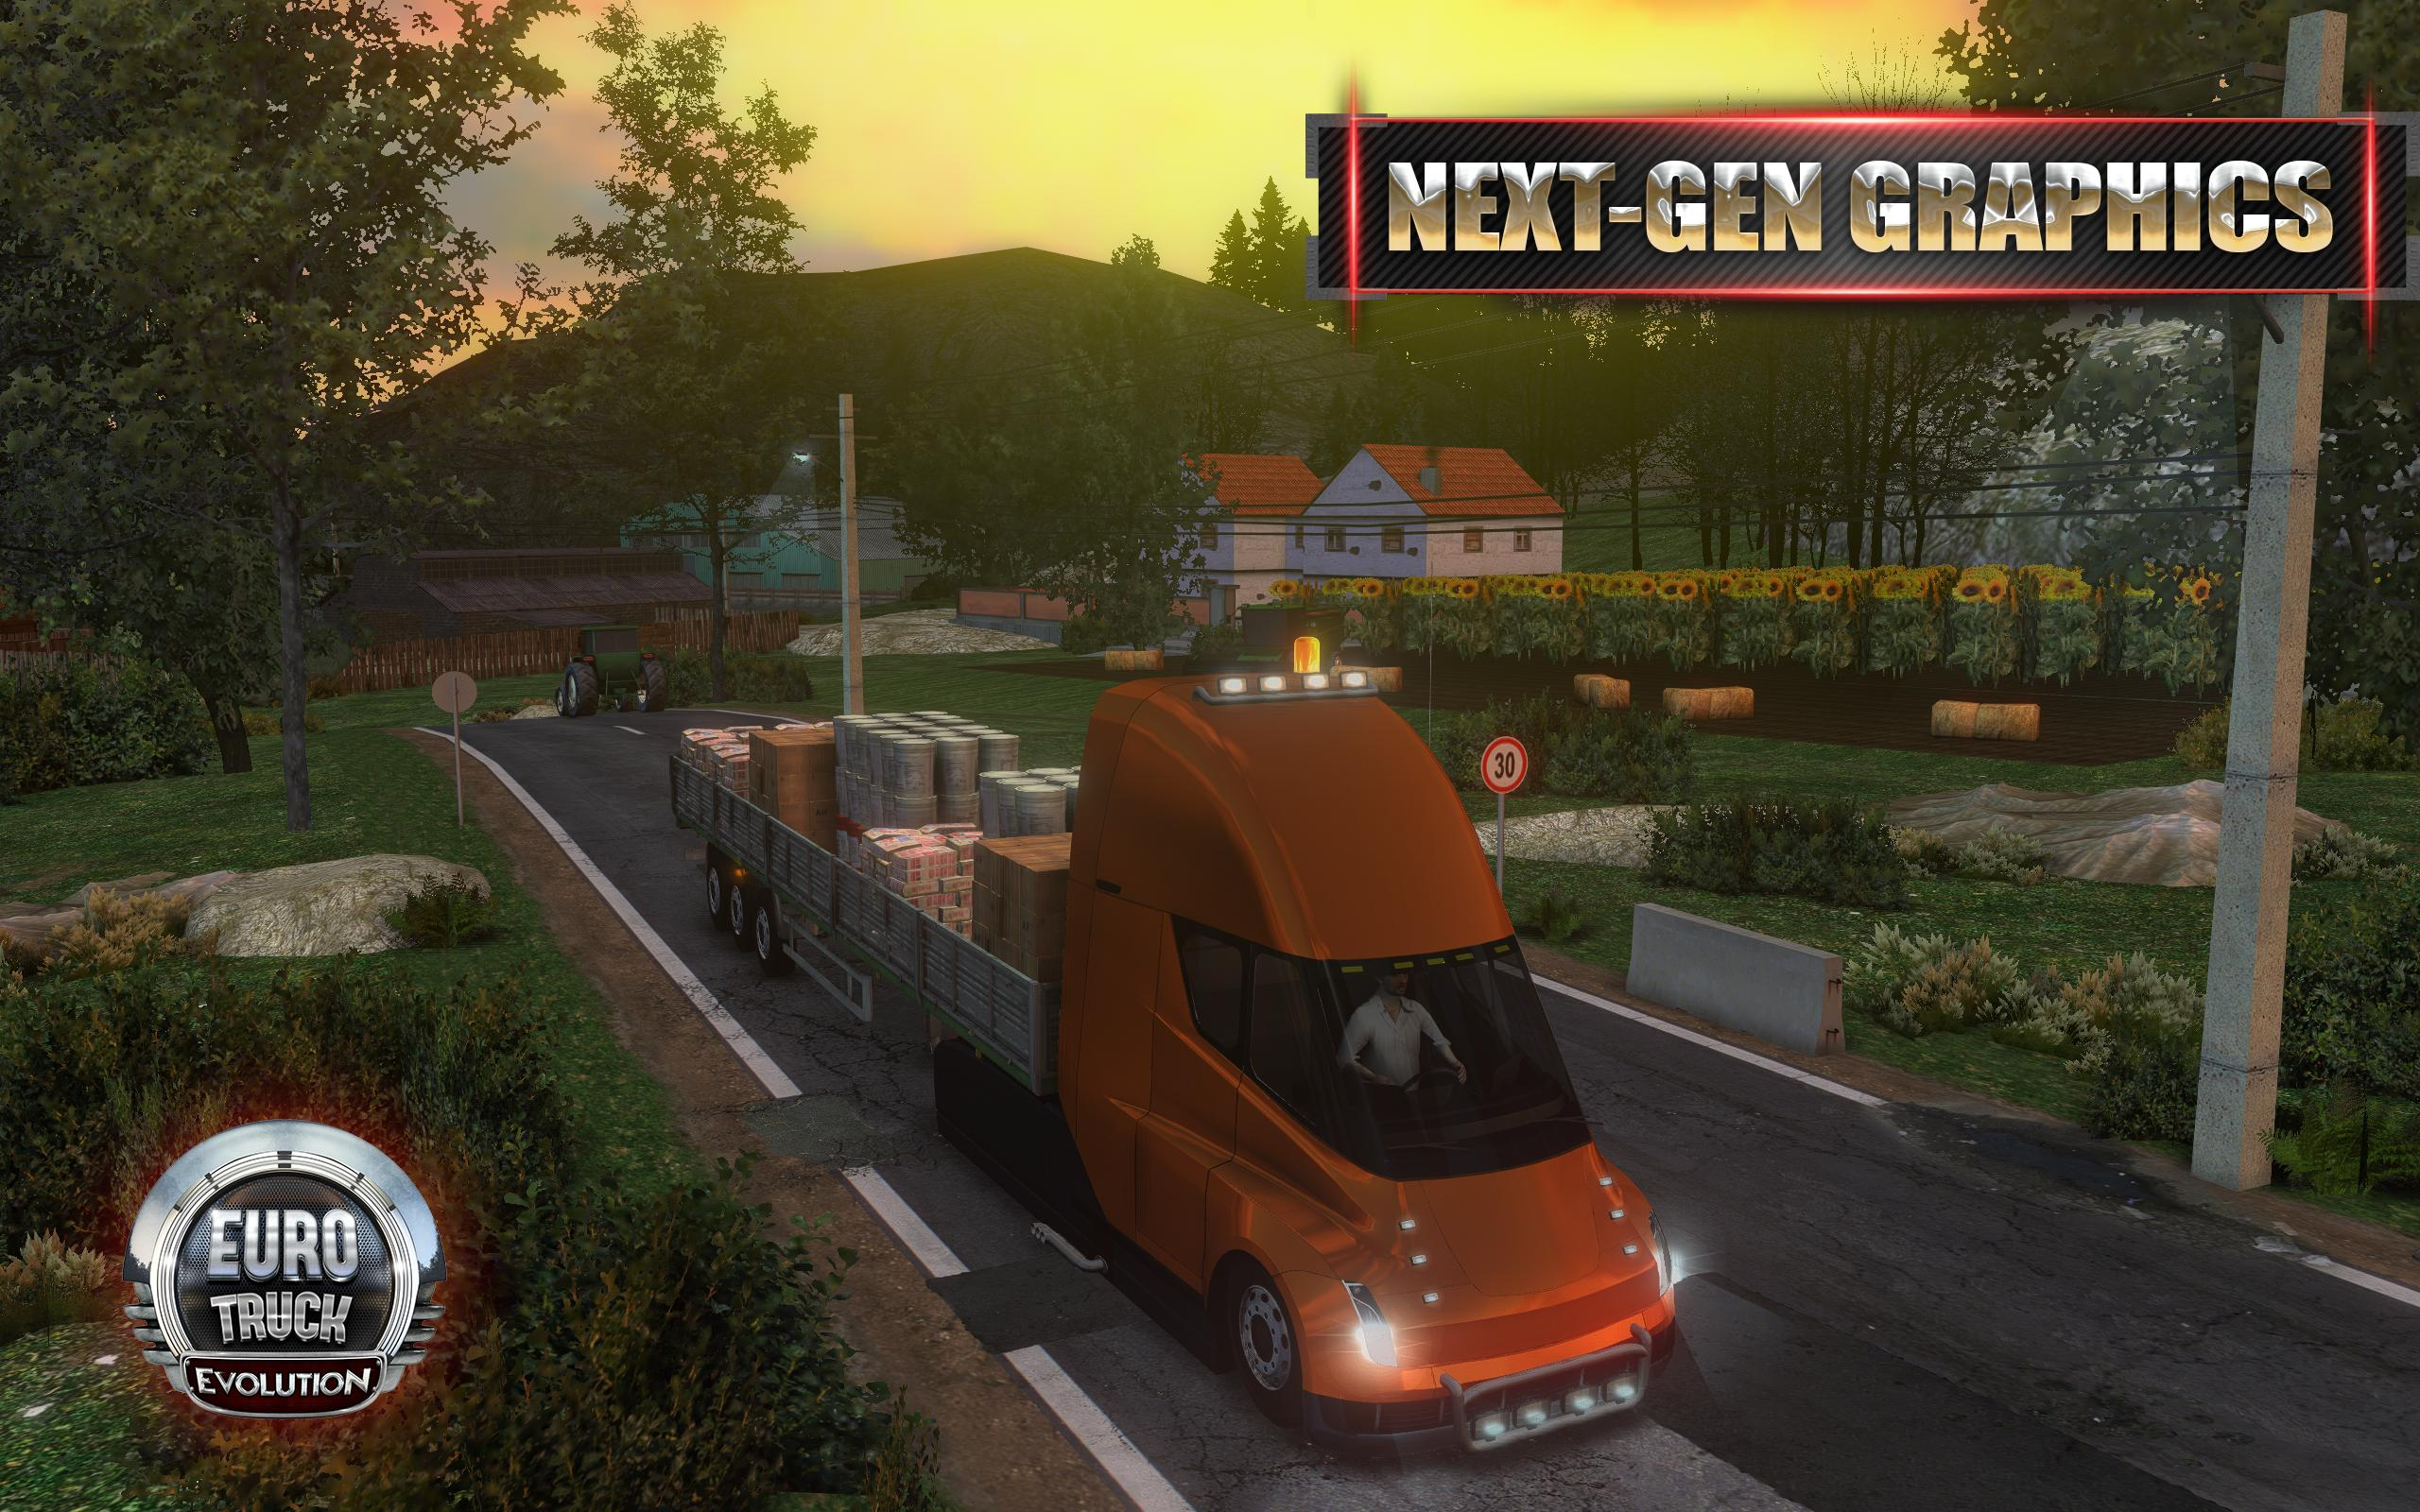 Euro Truck Evolution (Simulator) 3.1 Screenshot 1